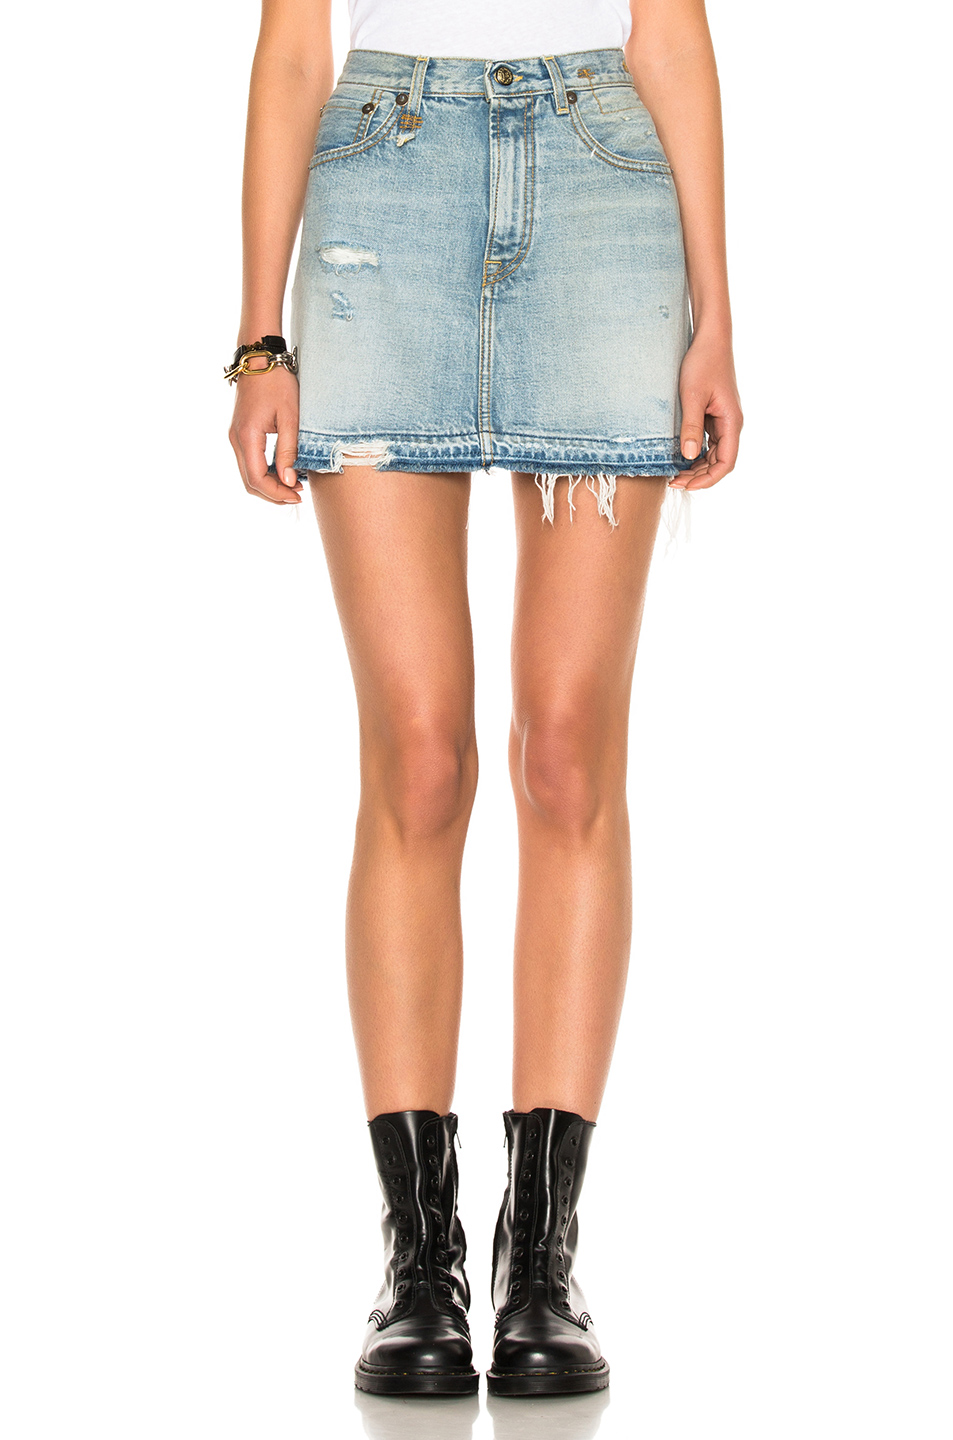 R13 For Fwrd Exclusive High Rise Destroyed Mini Skirt In Blue